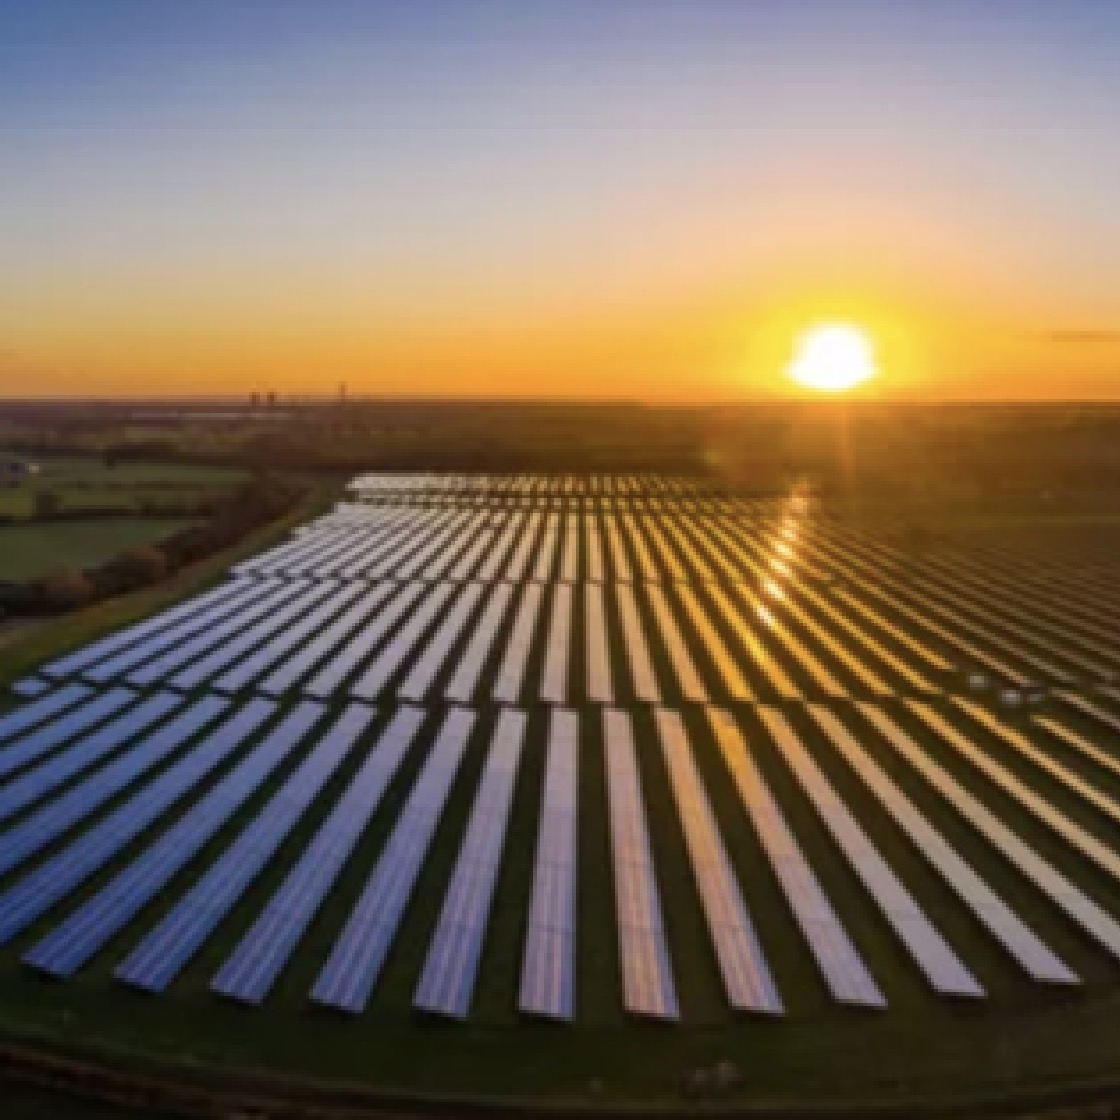 A field of solar panels with the sun setting in the background.